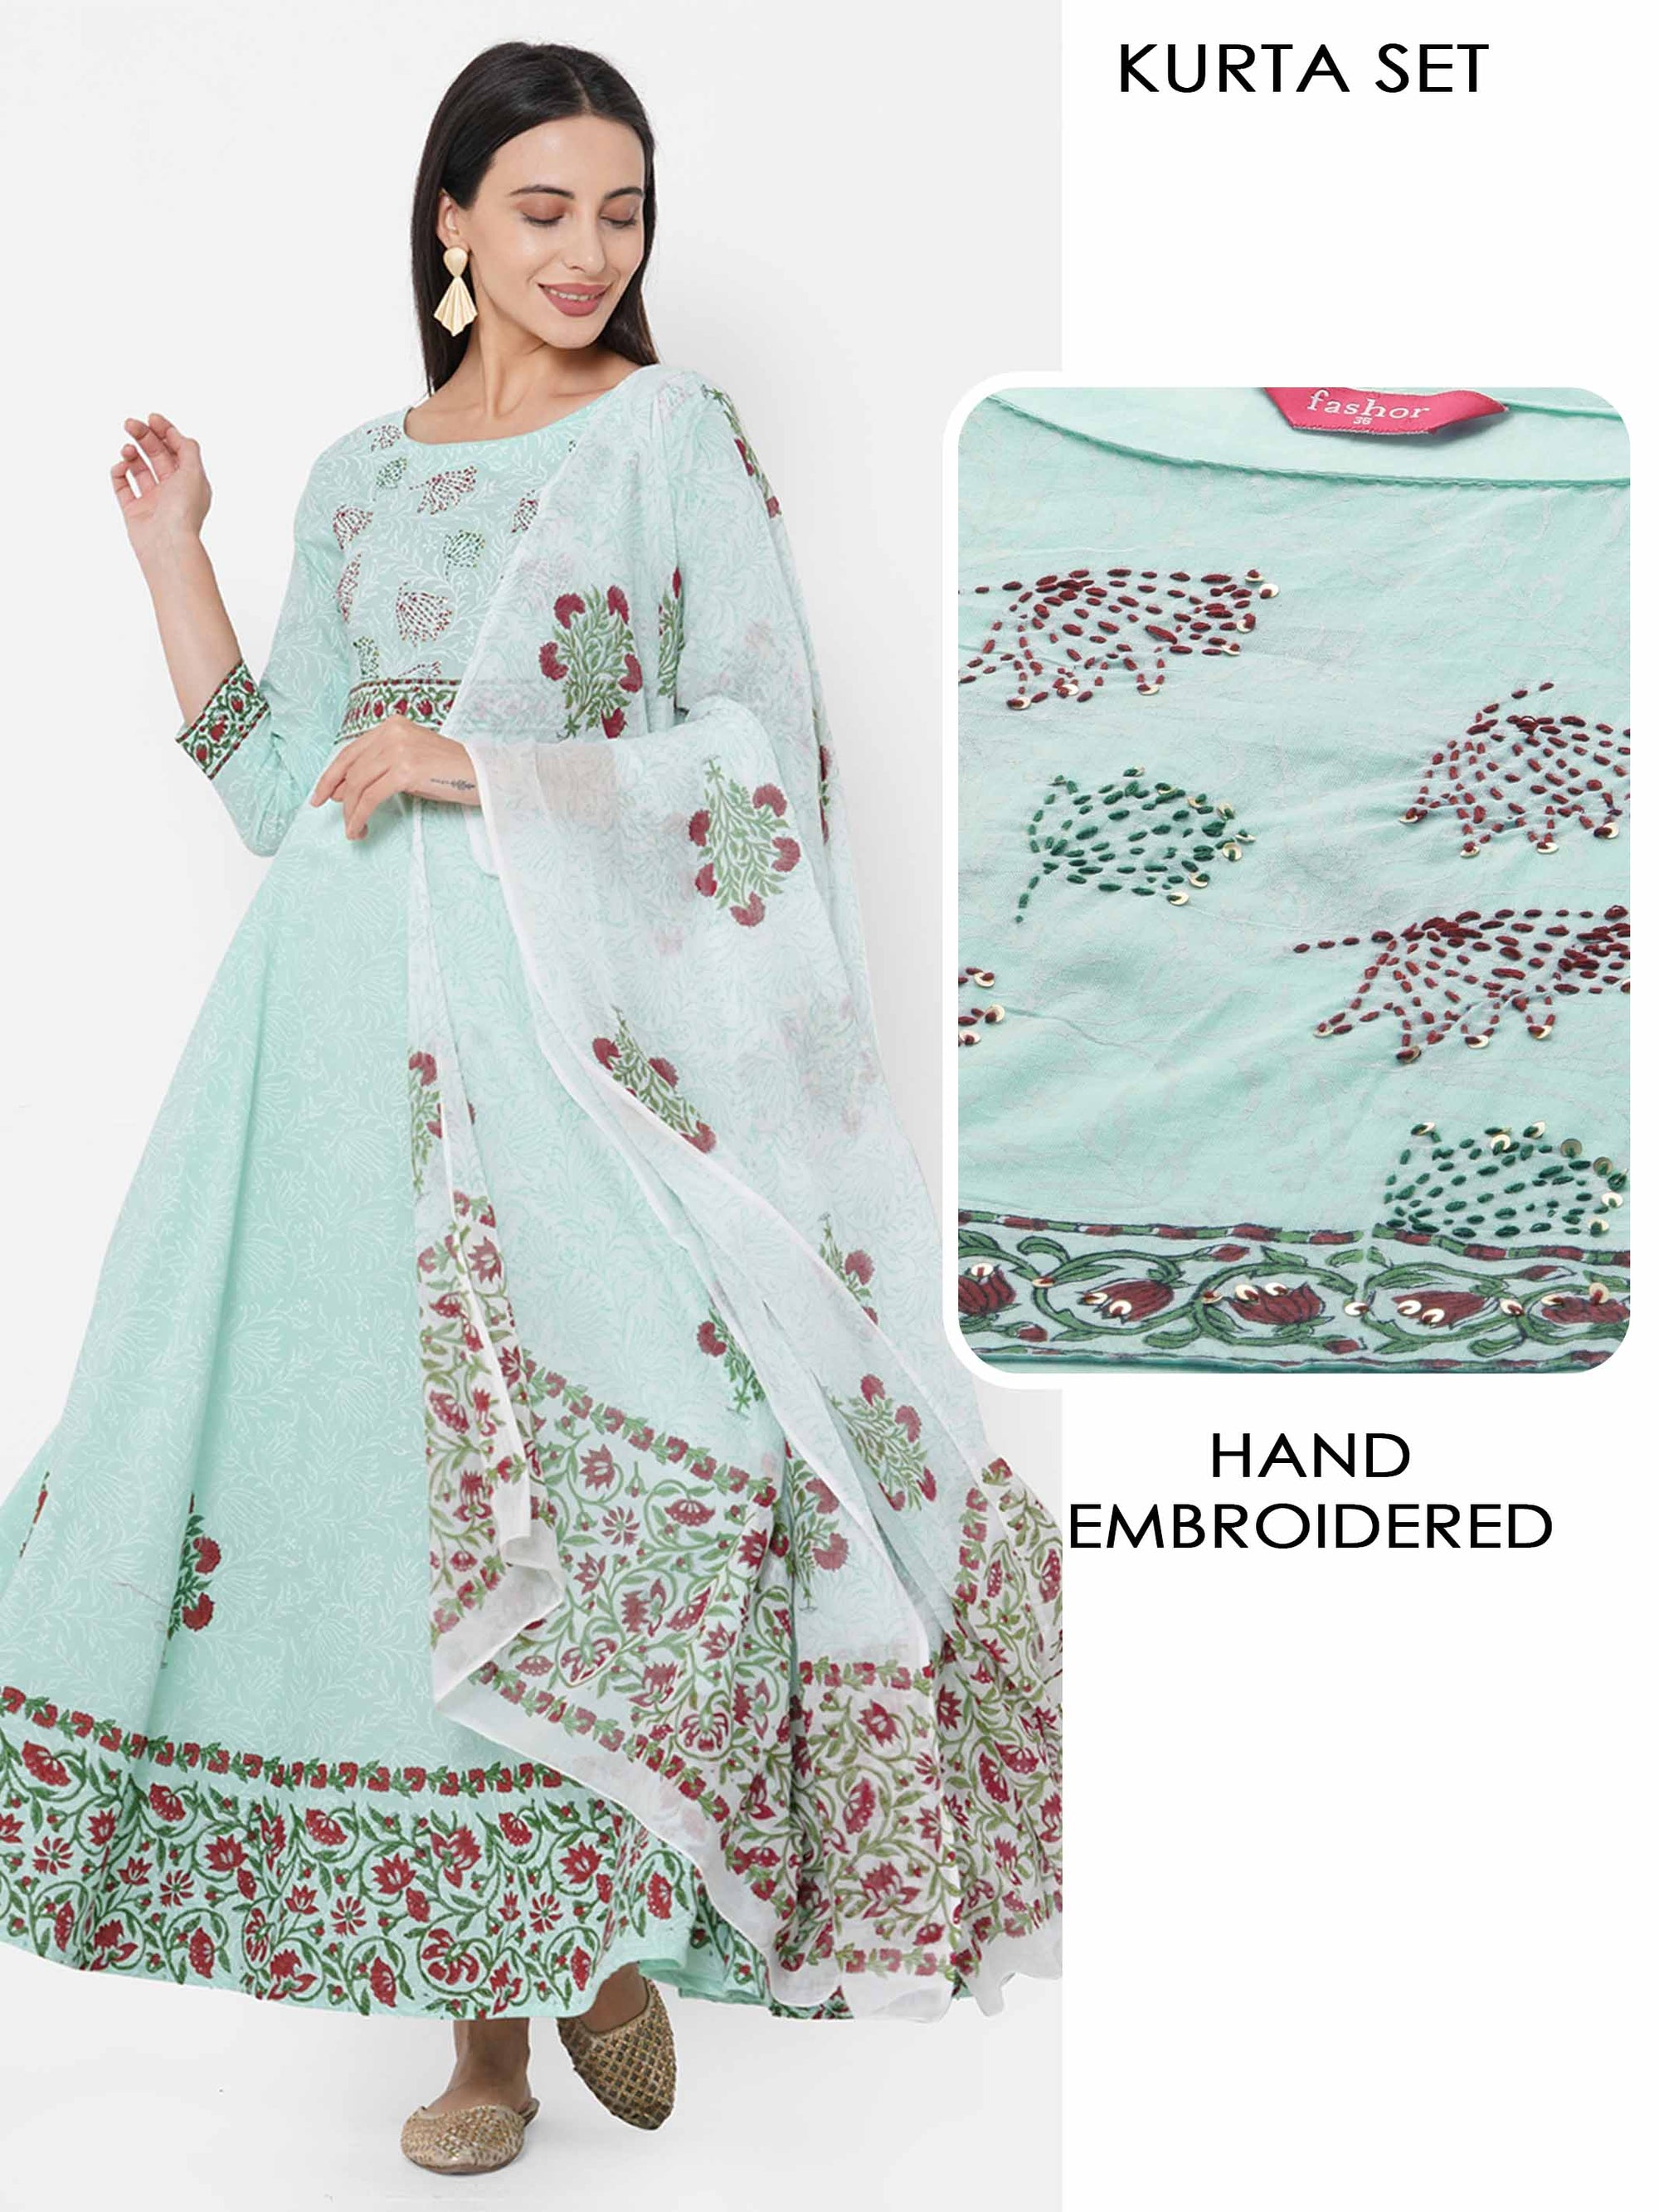 Floral Printed & Hand Embroidered Kurta with Solid Pant with Mix Printed Dupatta – Powder Green